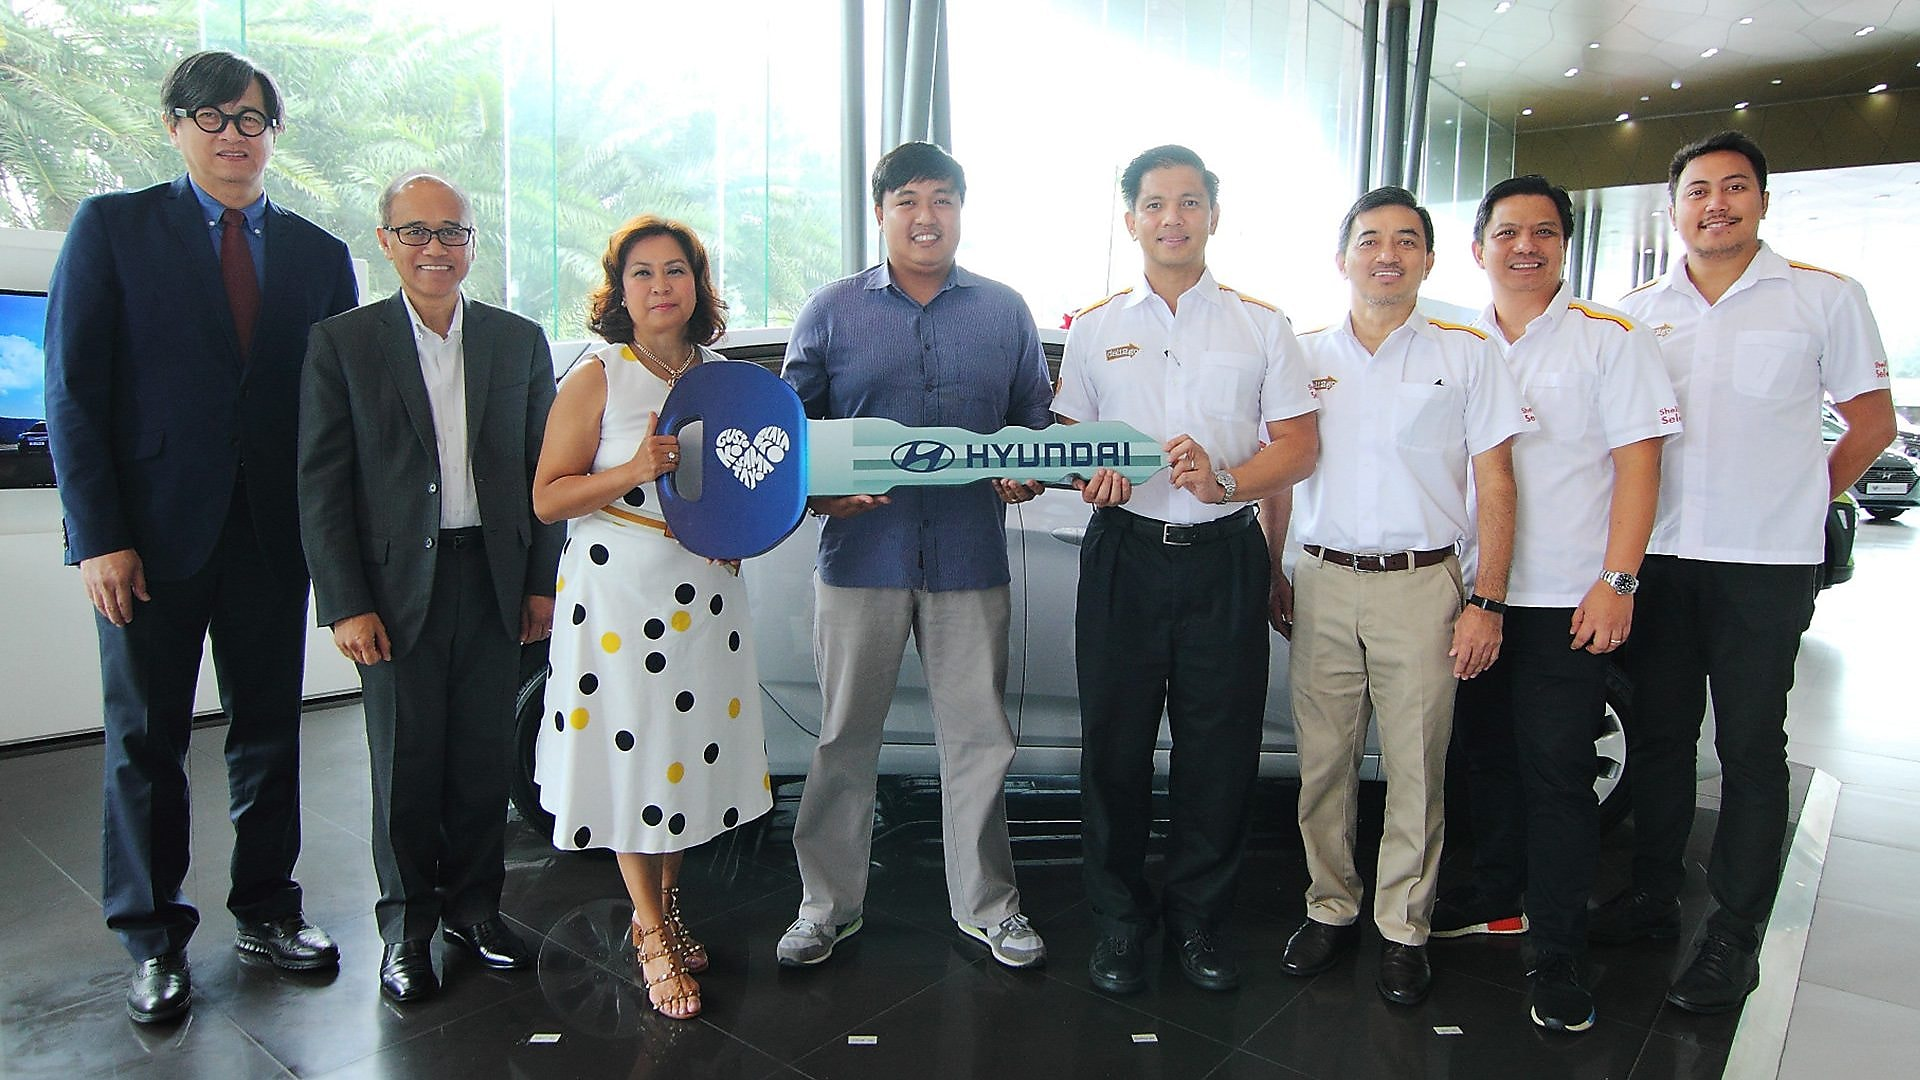 Hyundai reaffirms Shell as best Fuels partner for their cars